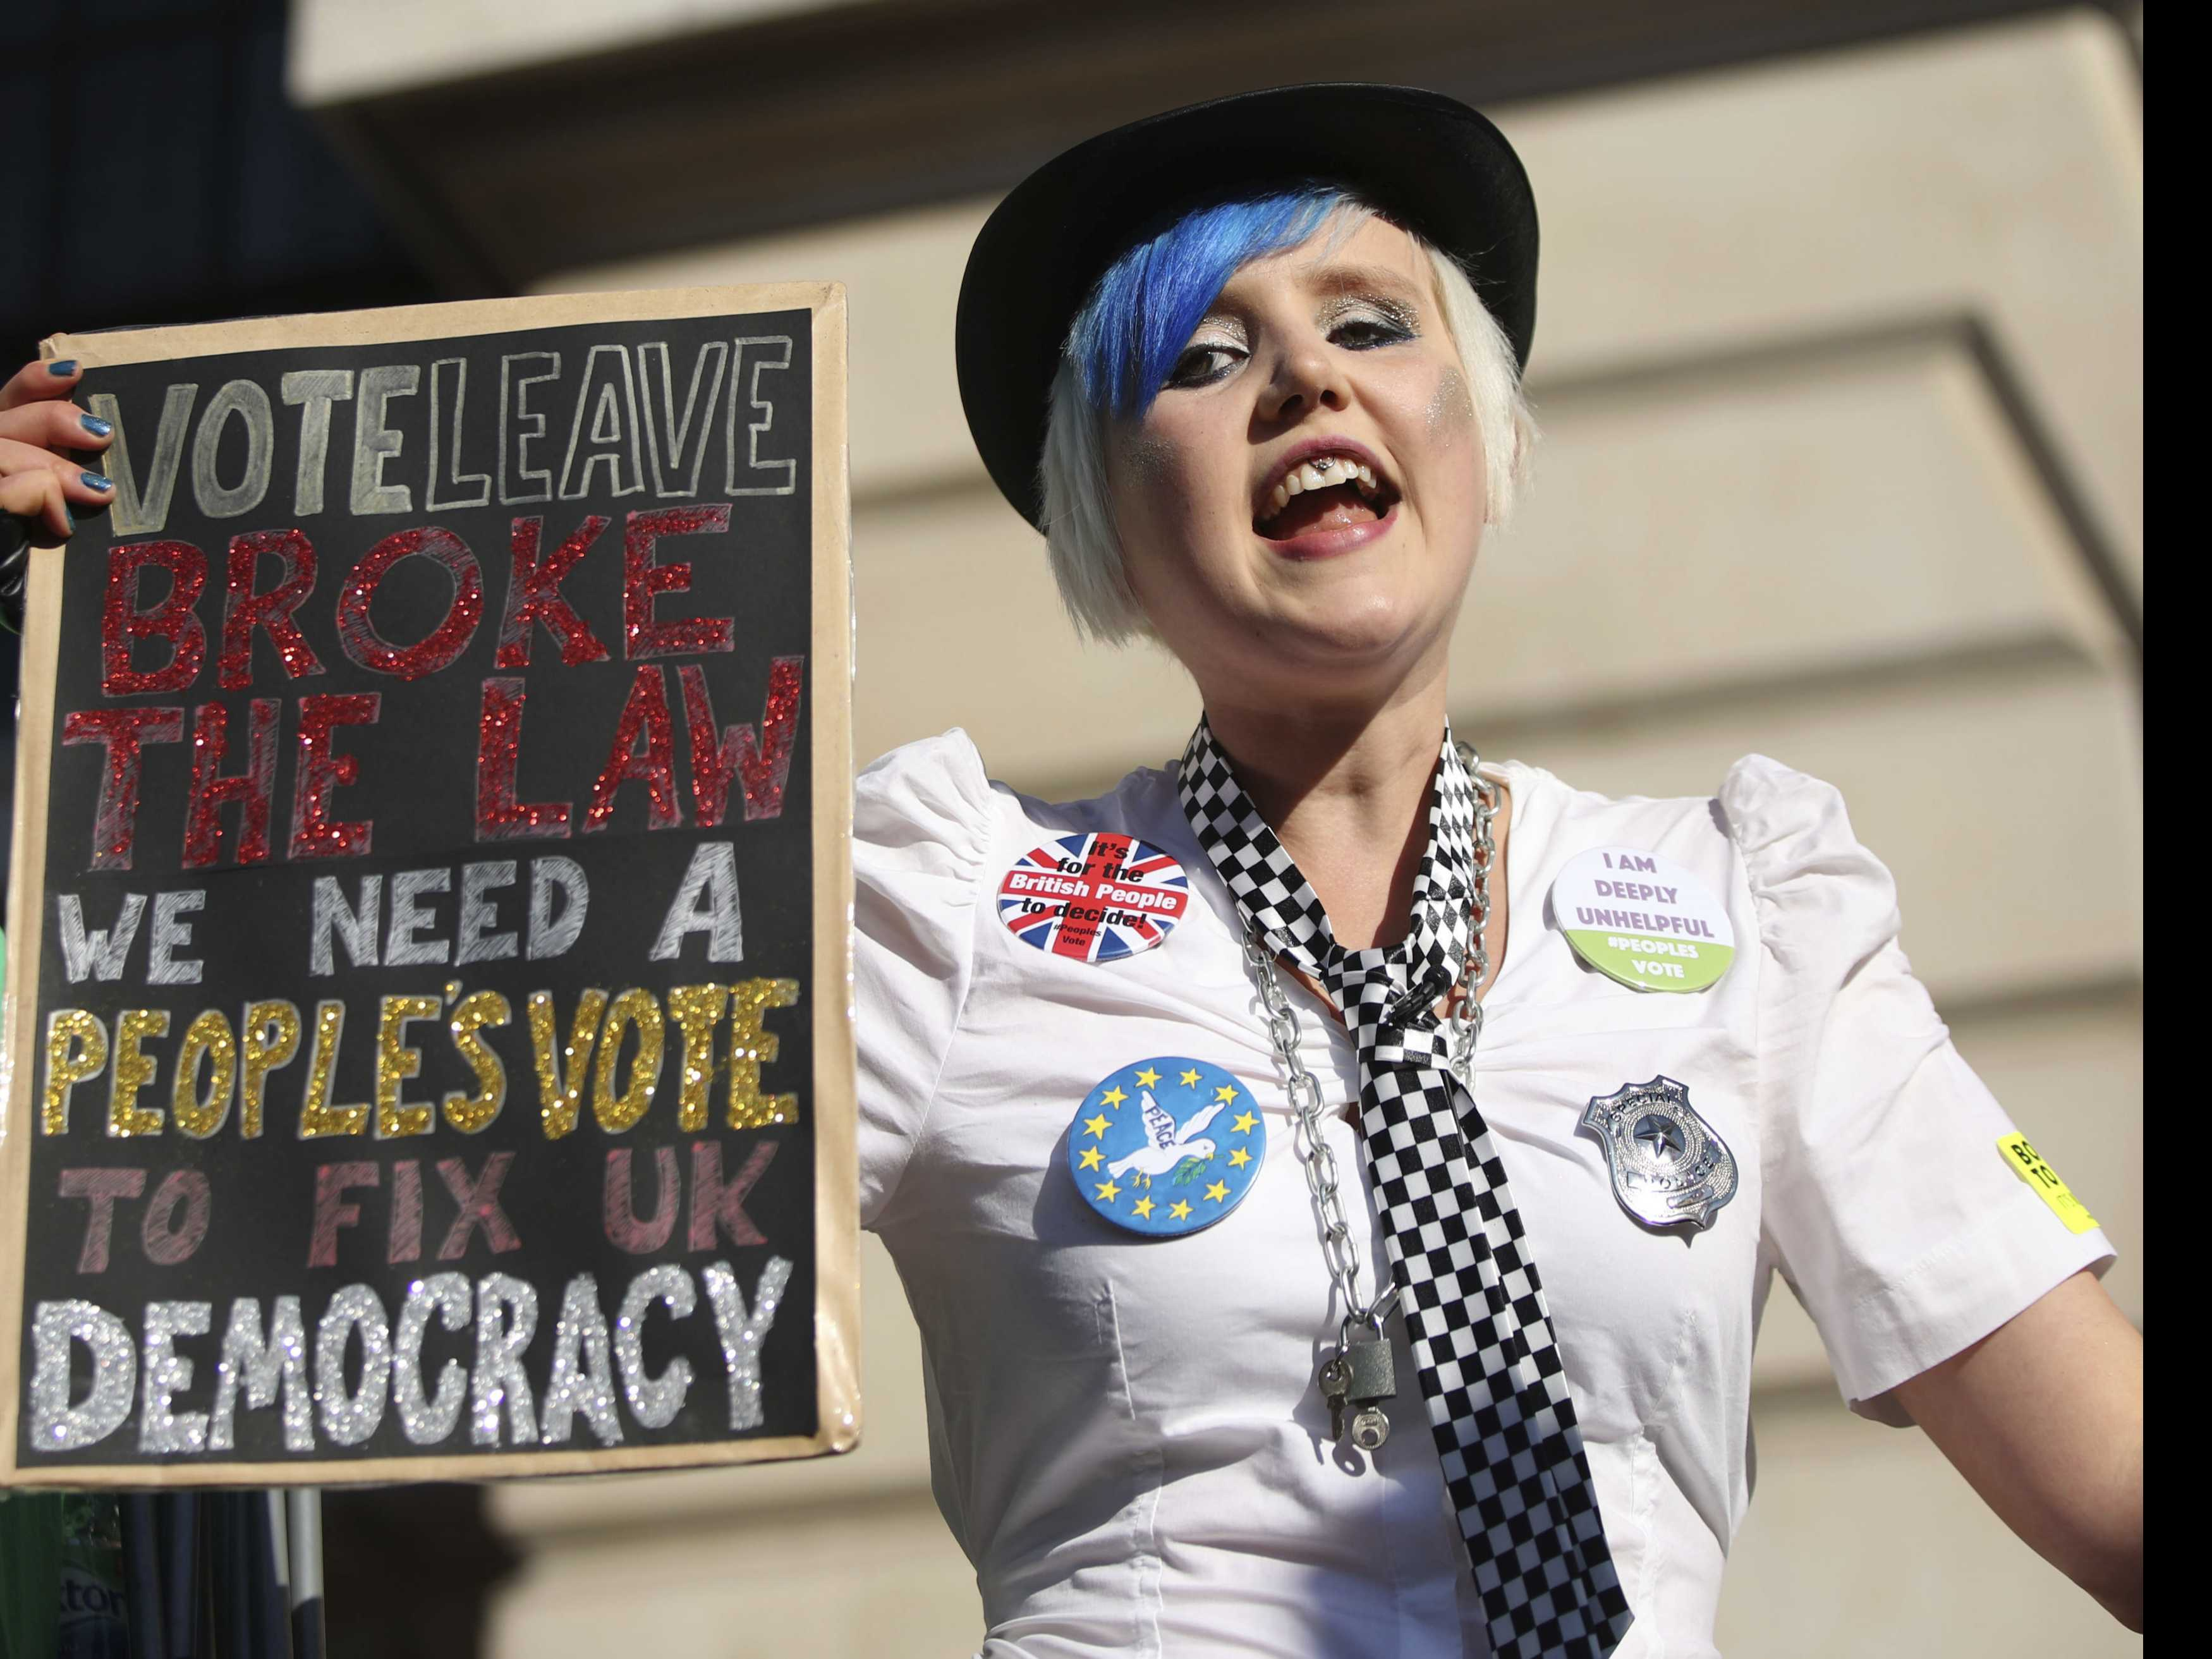 Tens of Thousands March in London to Demand New Brexit Vote